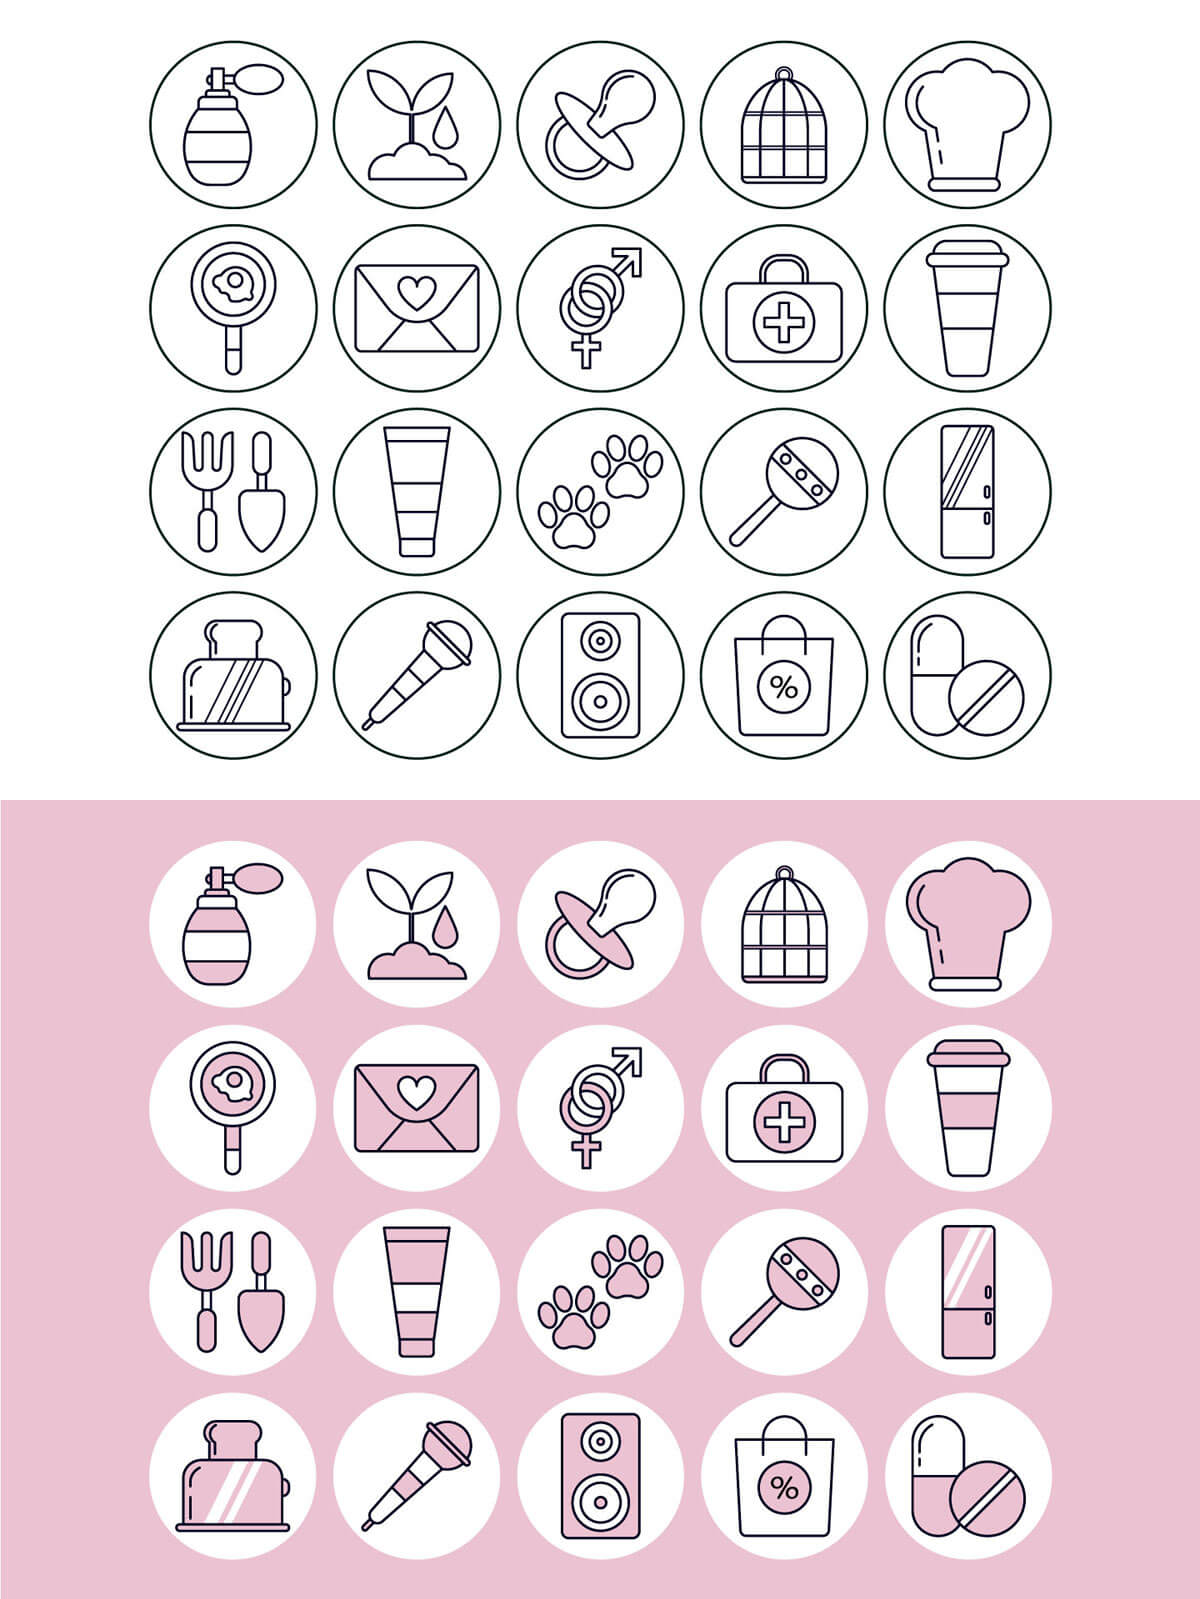 20 Free Instagram Stories Icons